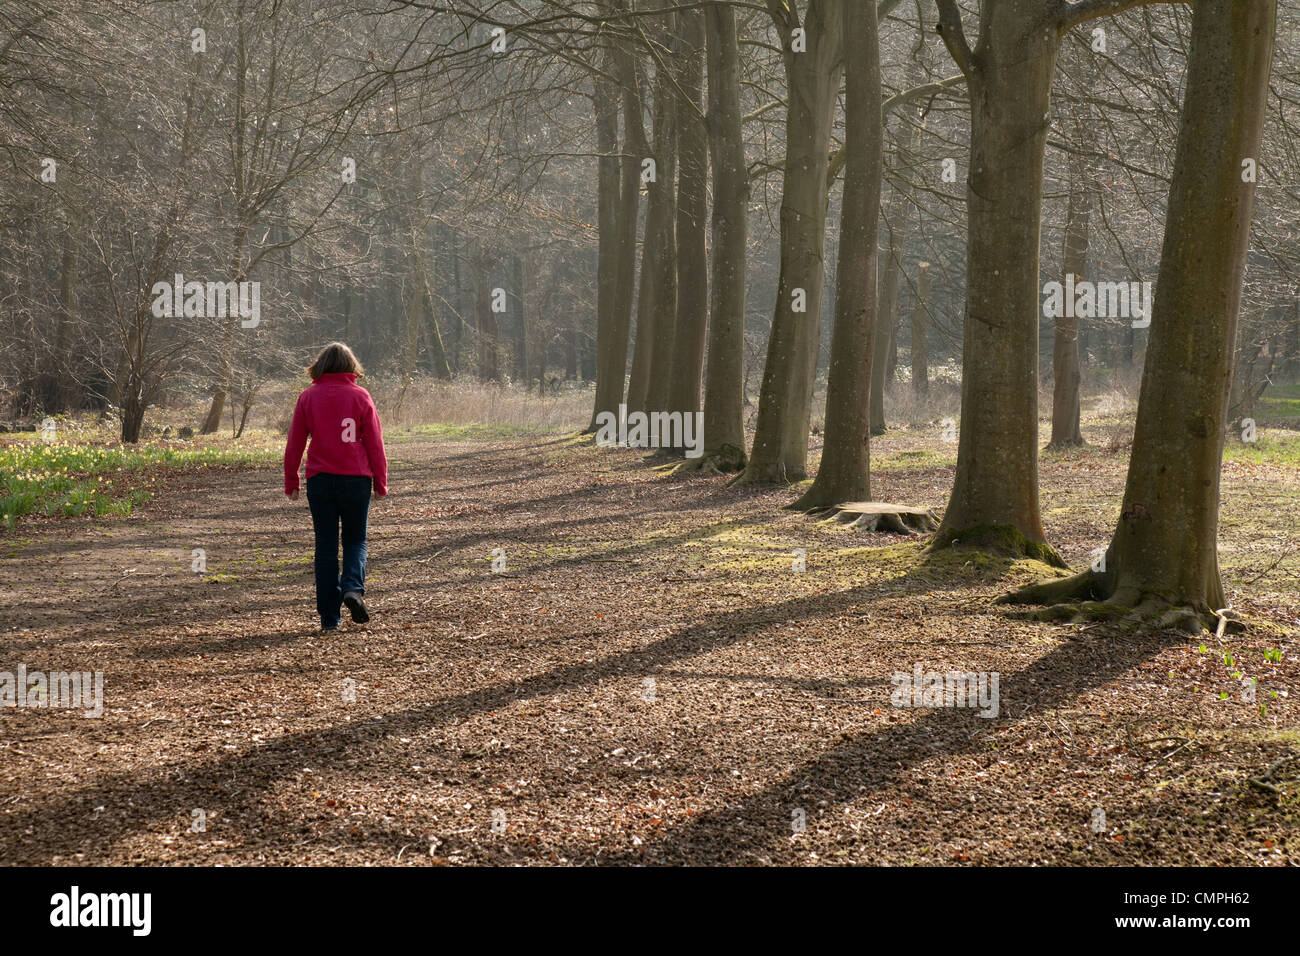 Woman walking alone in woods, rear view, Thetford Forest Norfolk UK - Stock Image